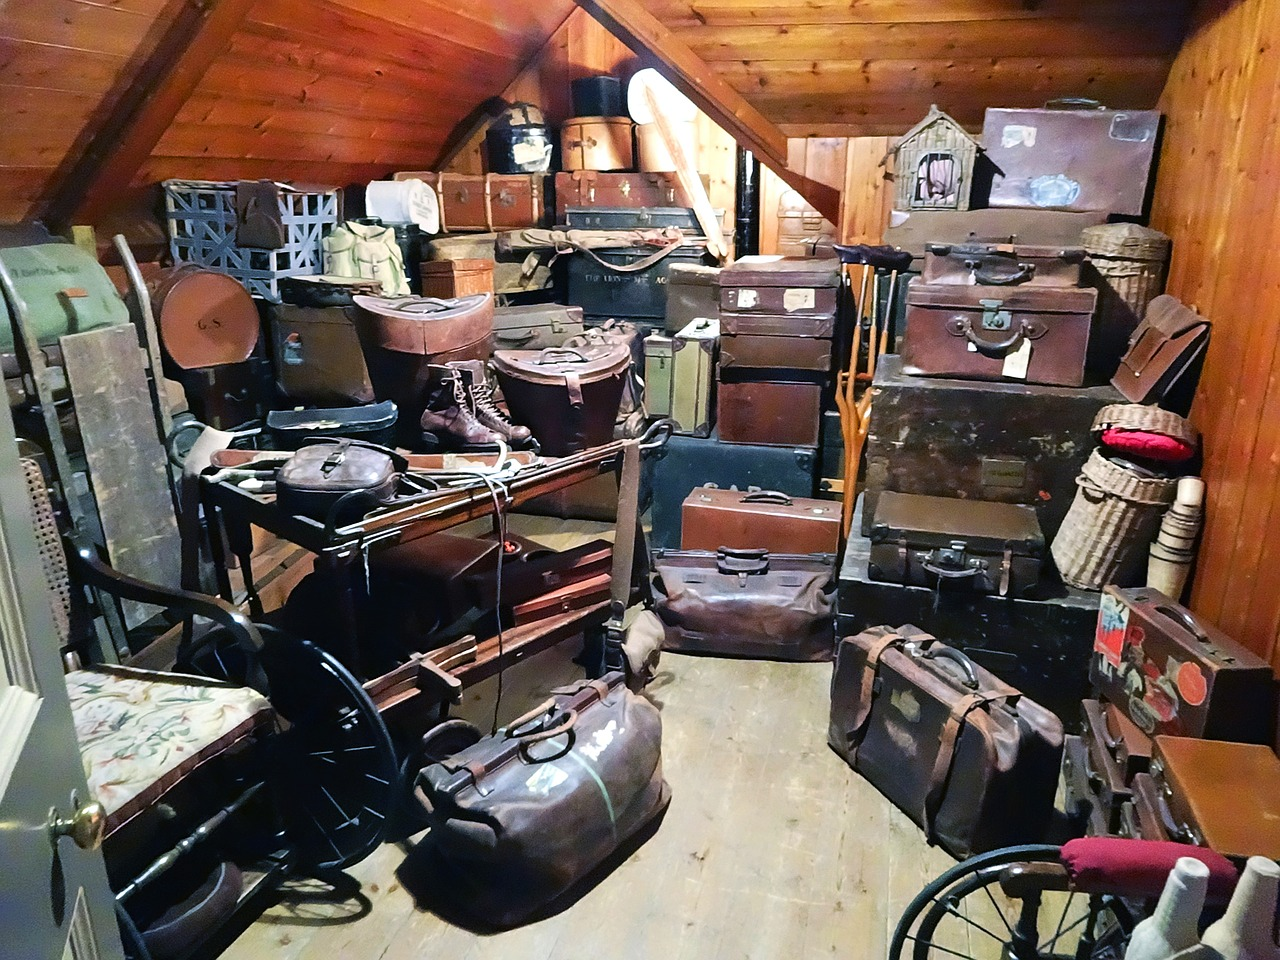 Pre-Listing Tip 4 shows an attic full of bags and luggage.